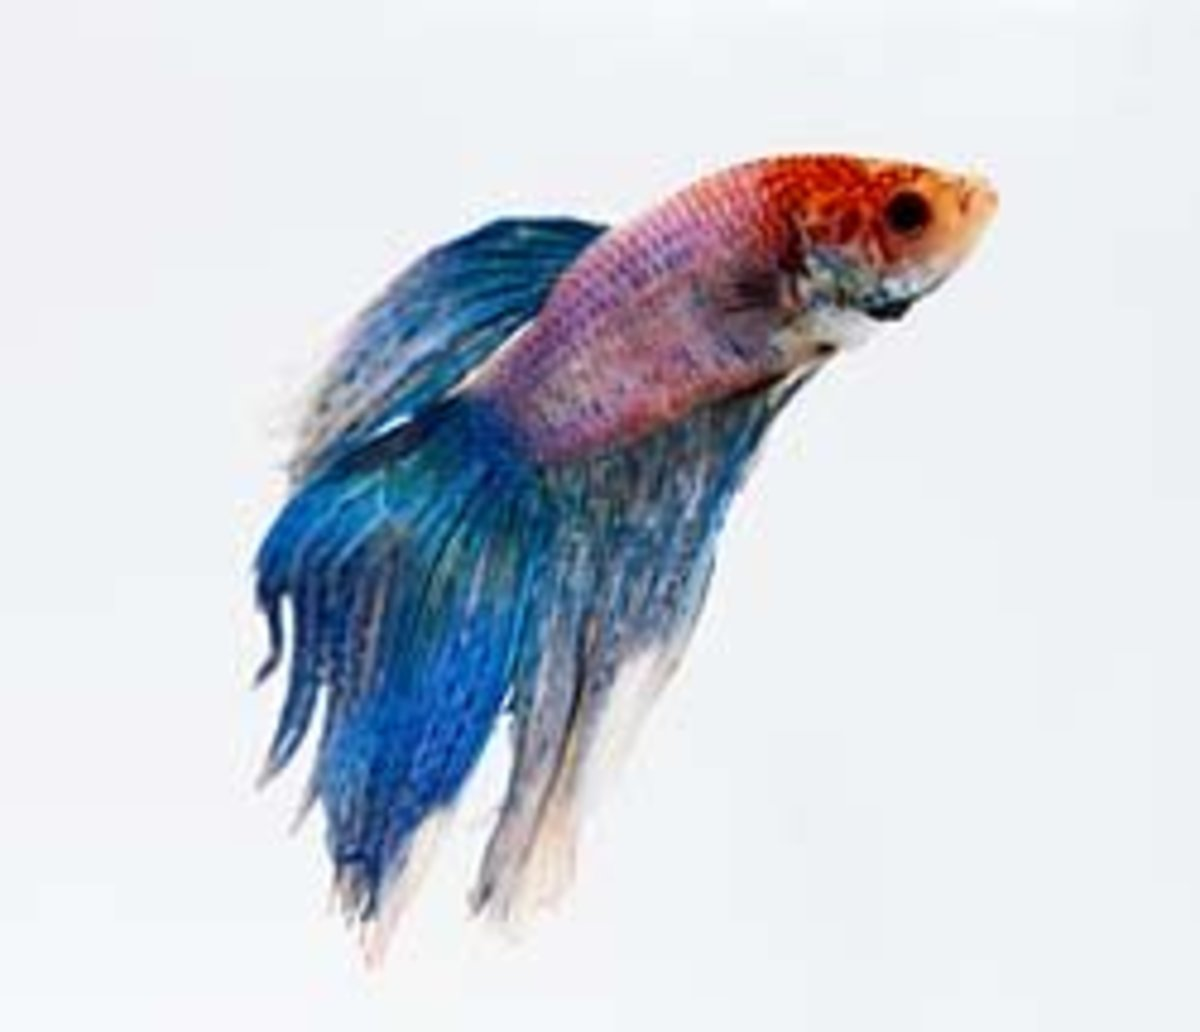 Some fish are mostly idiot-proof, like the Betta.